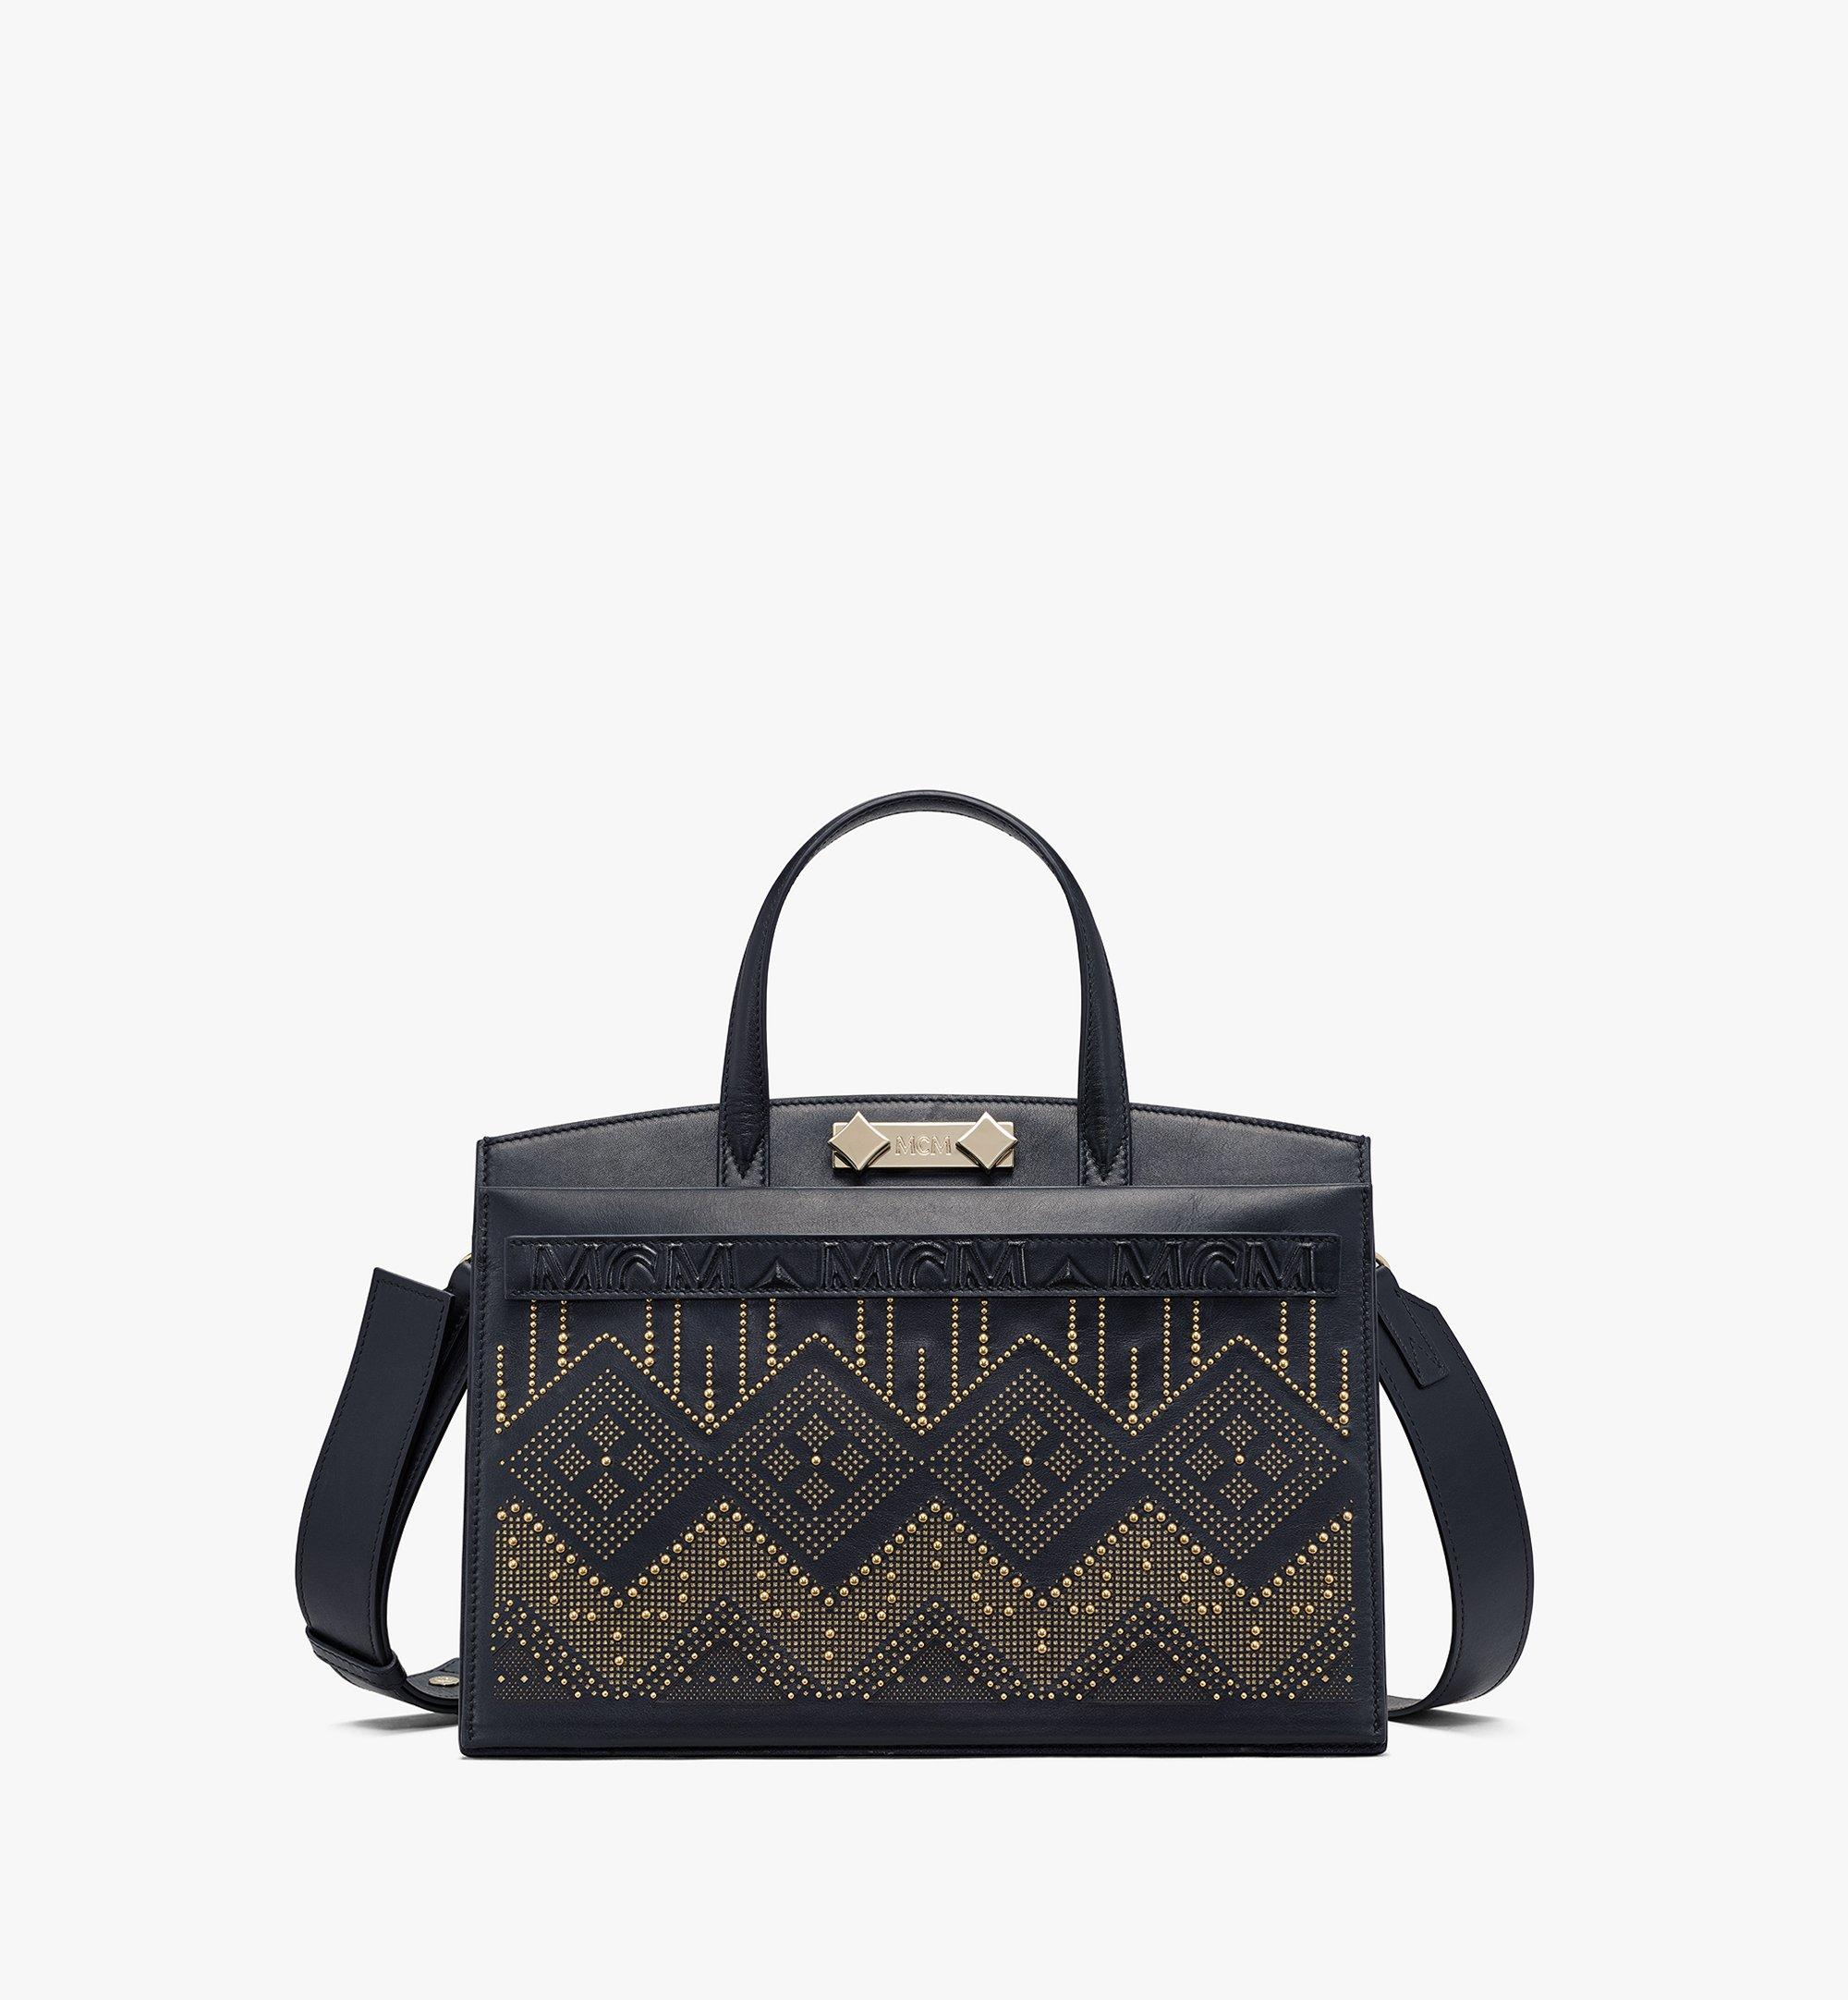 MCM Milano Lux Tote in Studded Leather Black MWTAADA03BK001 Alternate View 1